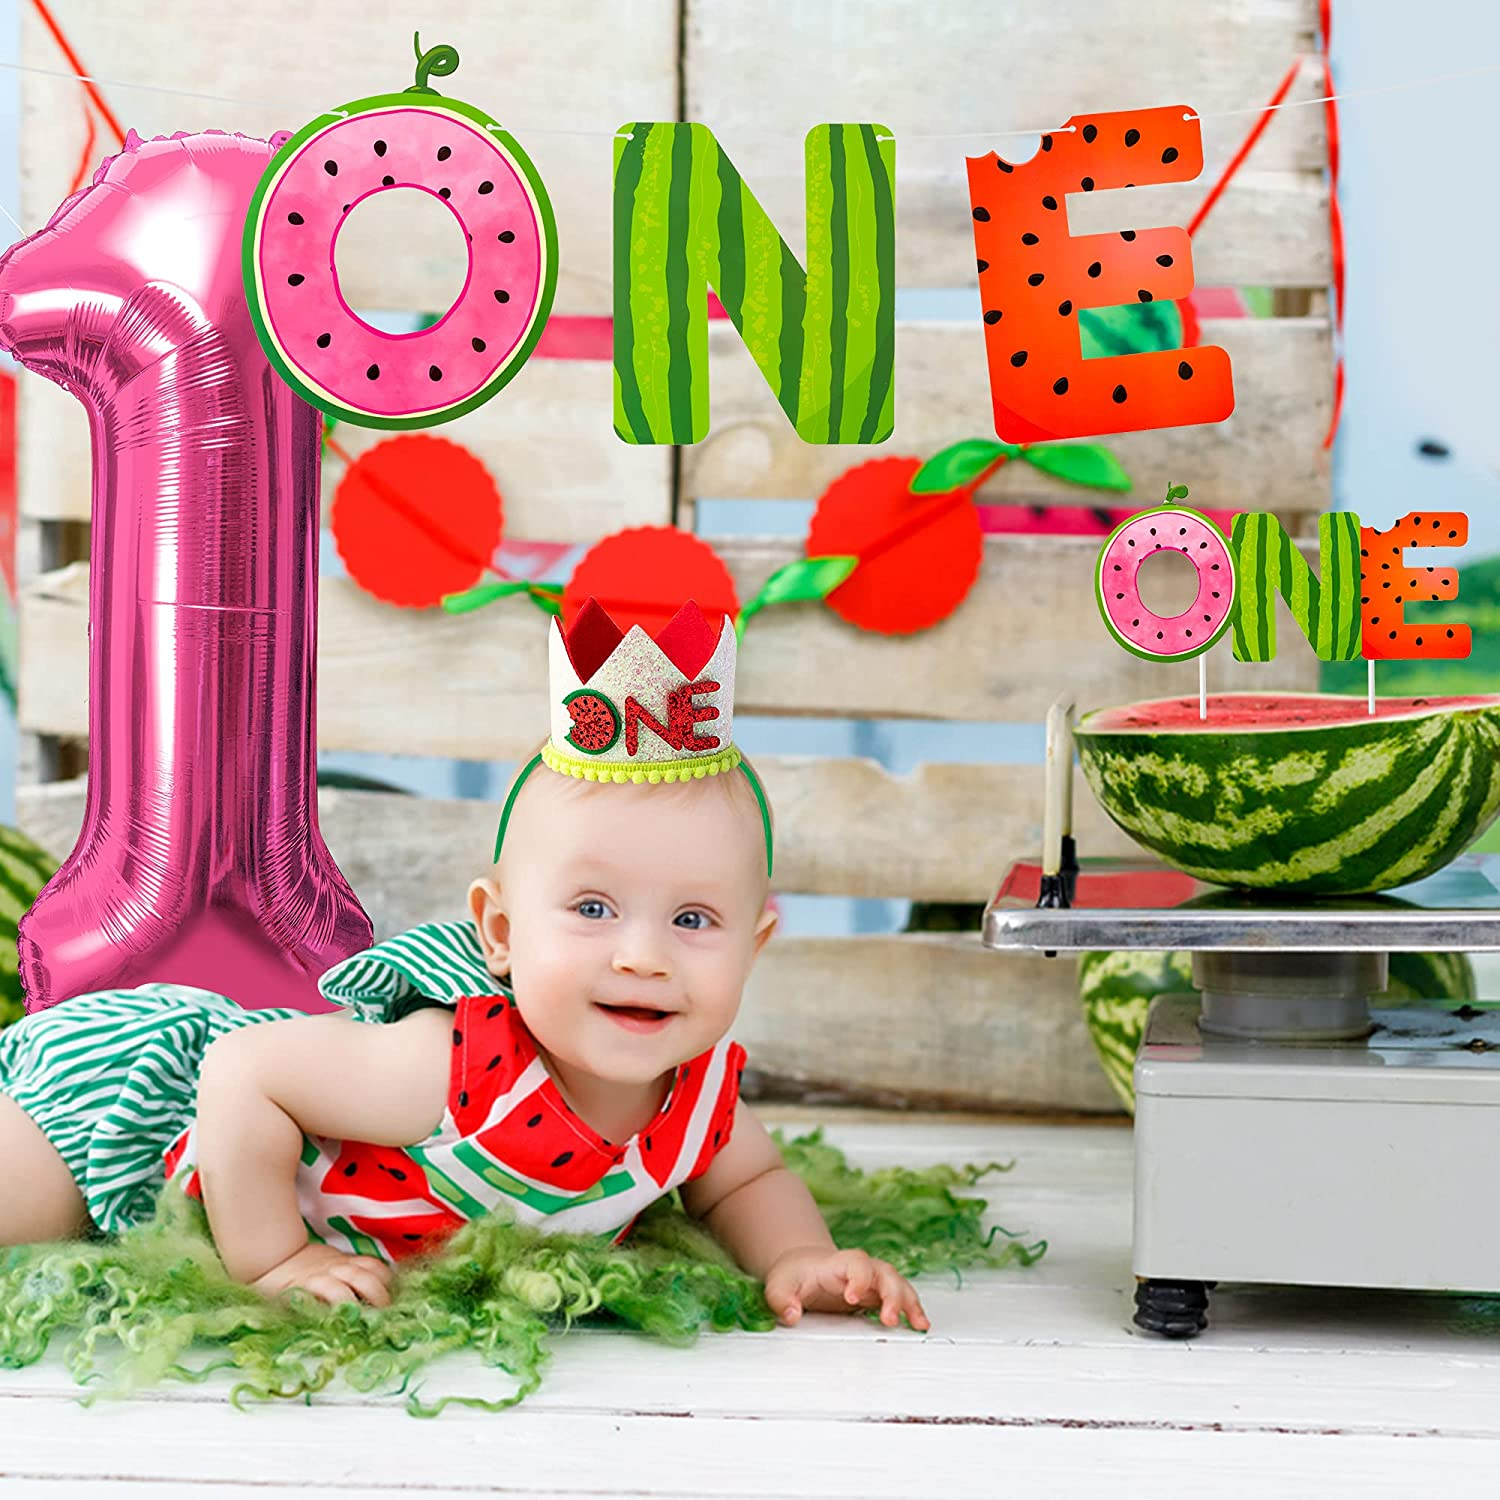 MALLMALL6 4Pcs Watermelon ONE First Birthday Party Decor in a Melon Summer Glitter Paper Banner Cake Topper Crown Rose Red Foil Balloon Kit Decorations Supplies Fruit Theme Photo Props for Baby Shower